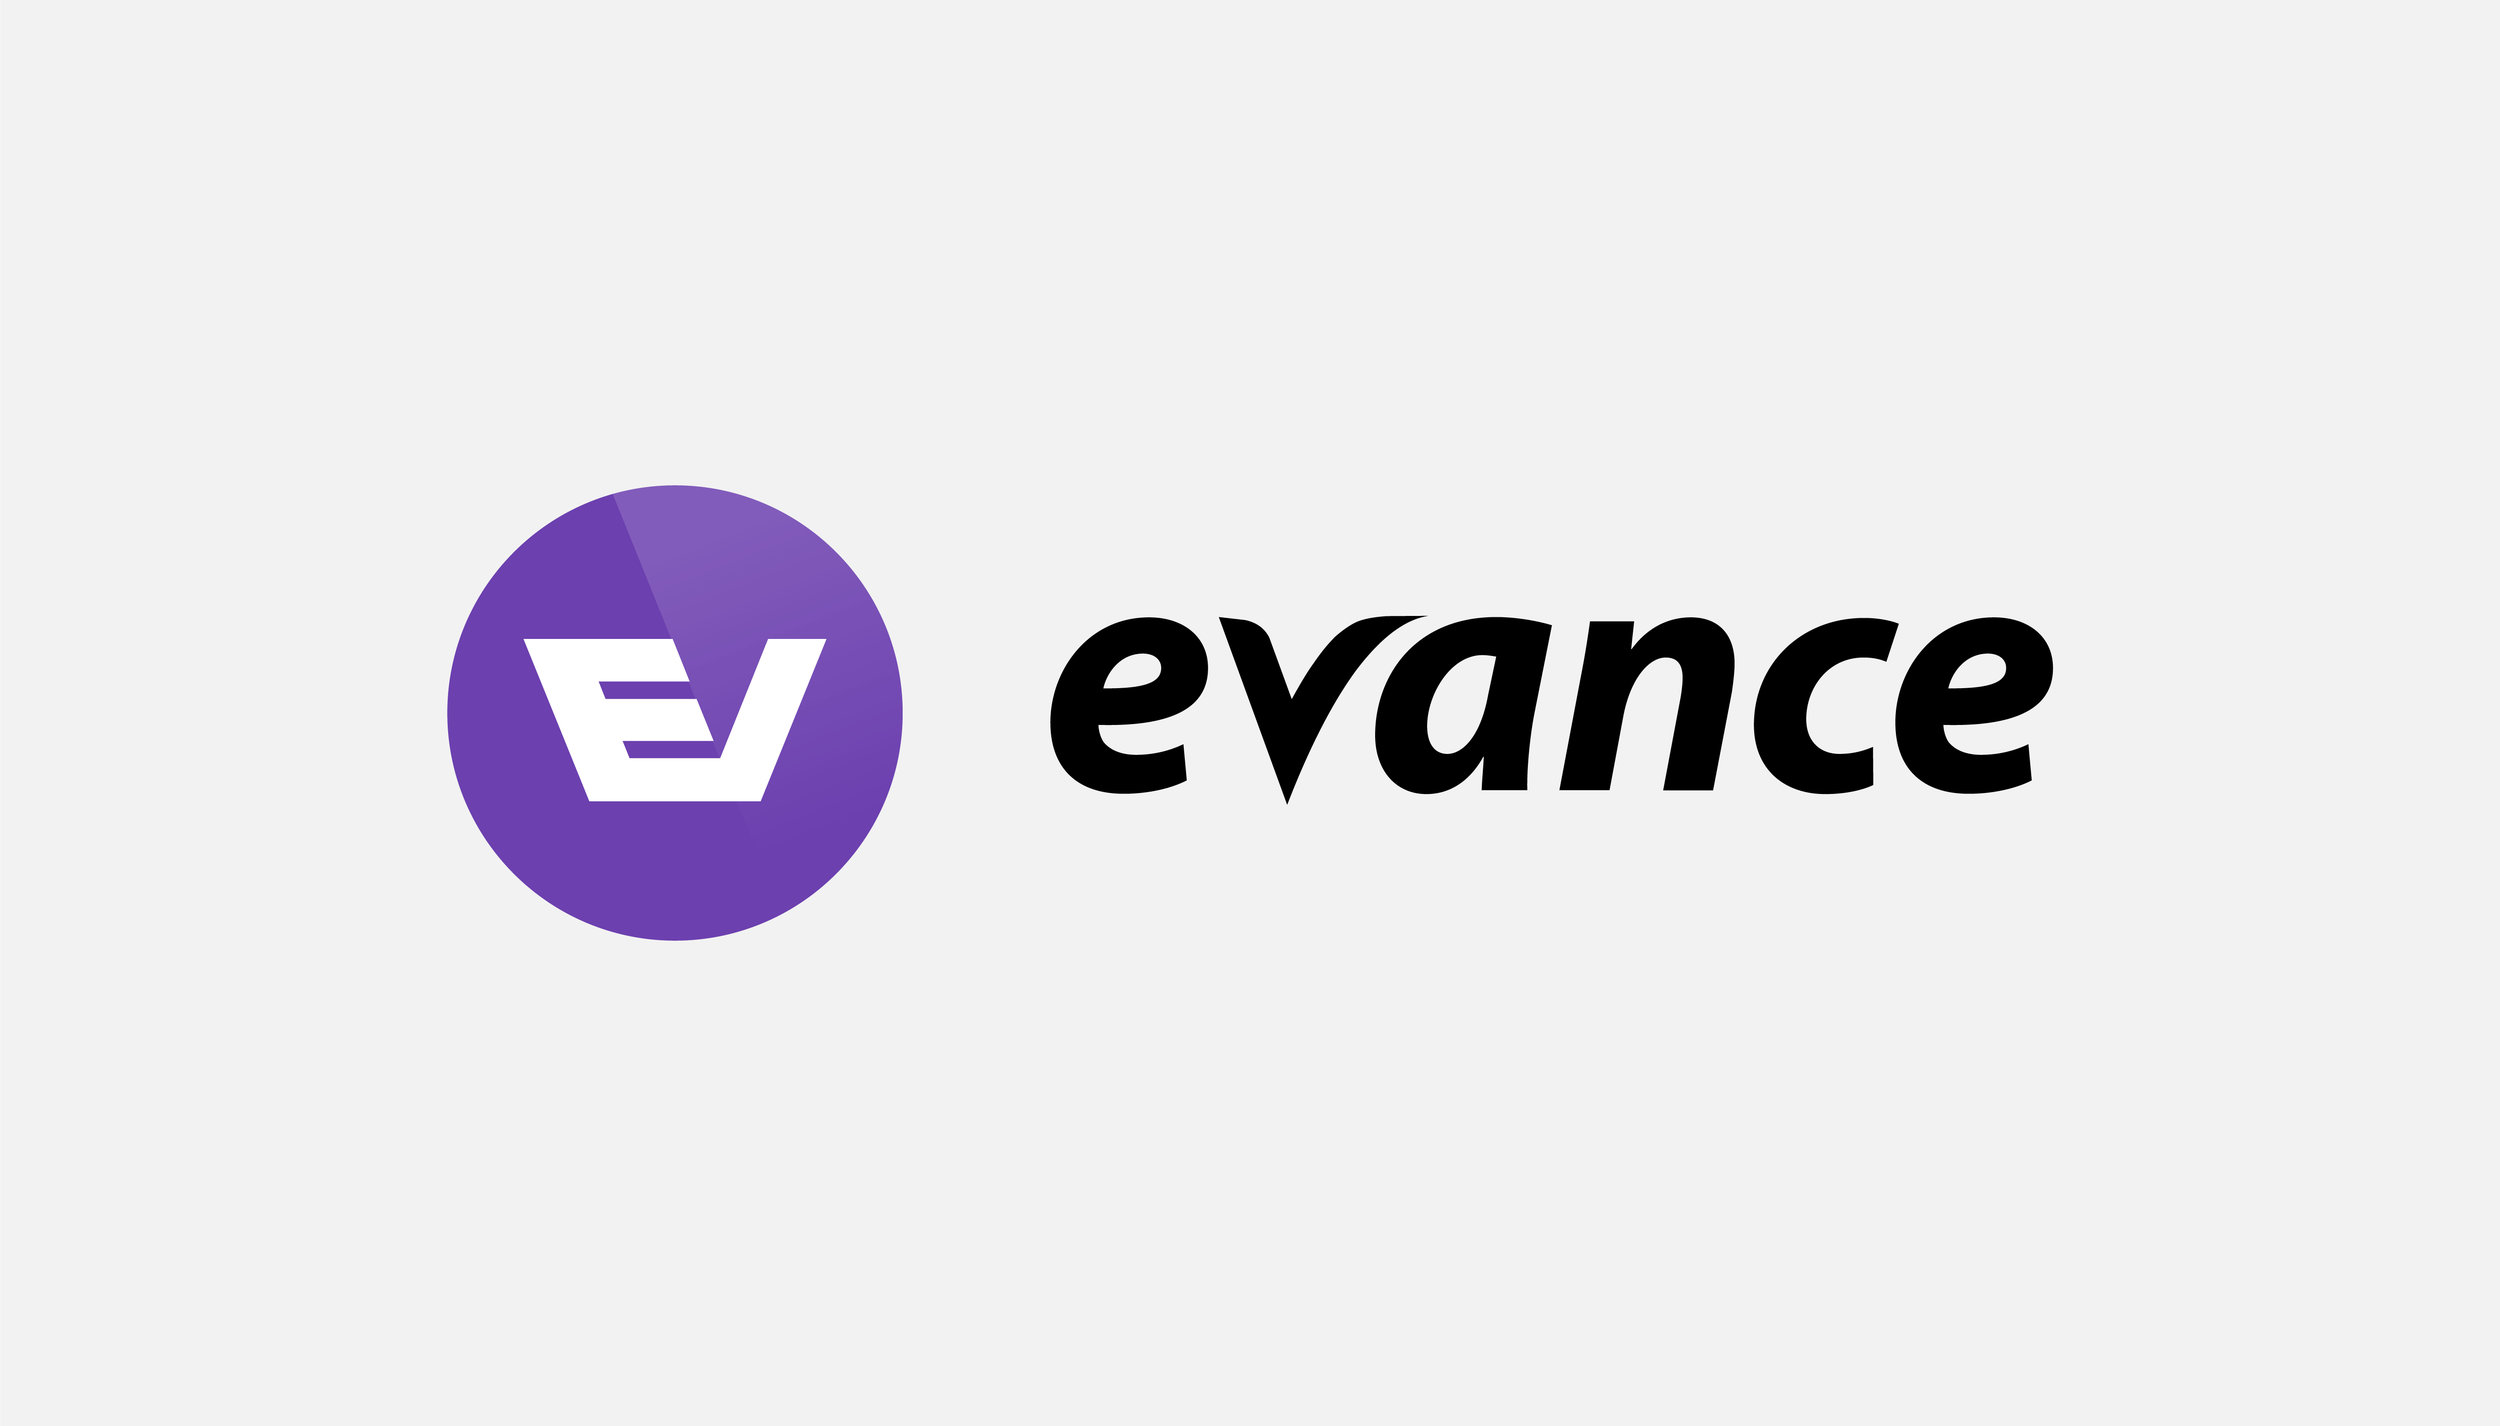 Evance Partners - We have years of experience in designing and developing websites on the Evance IT platform.